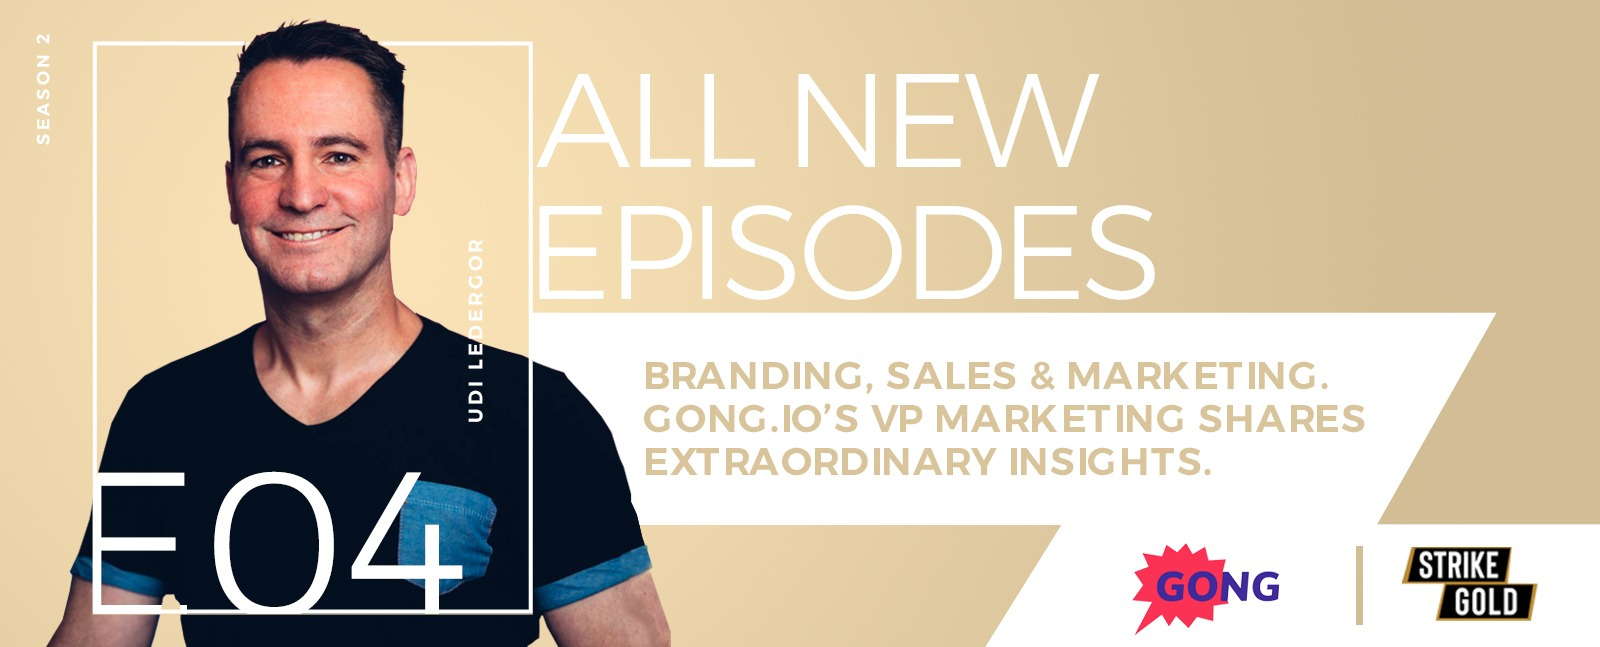 Branding, Sales & Marketing. Gong.io's VP Marketing Shares Extraordinary Insights.